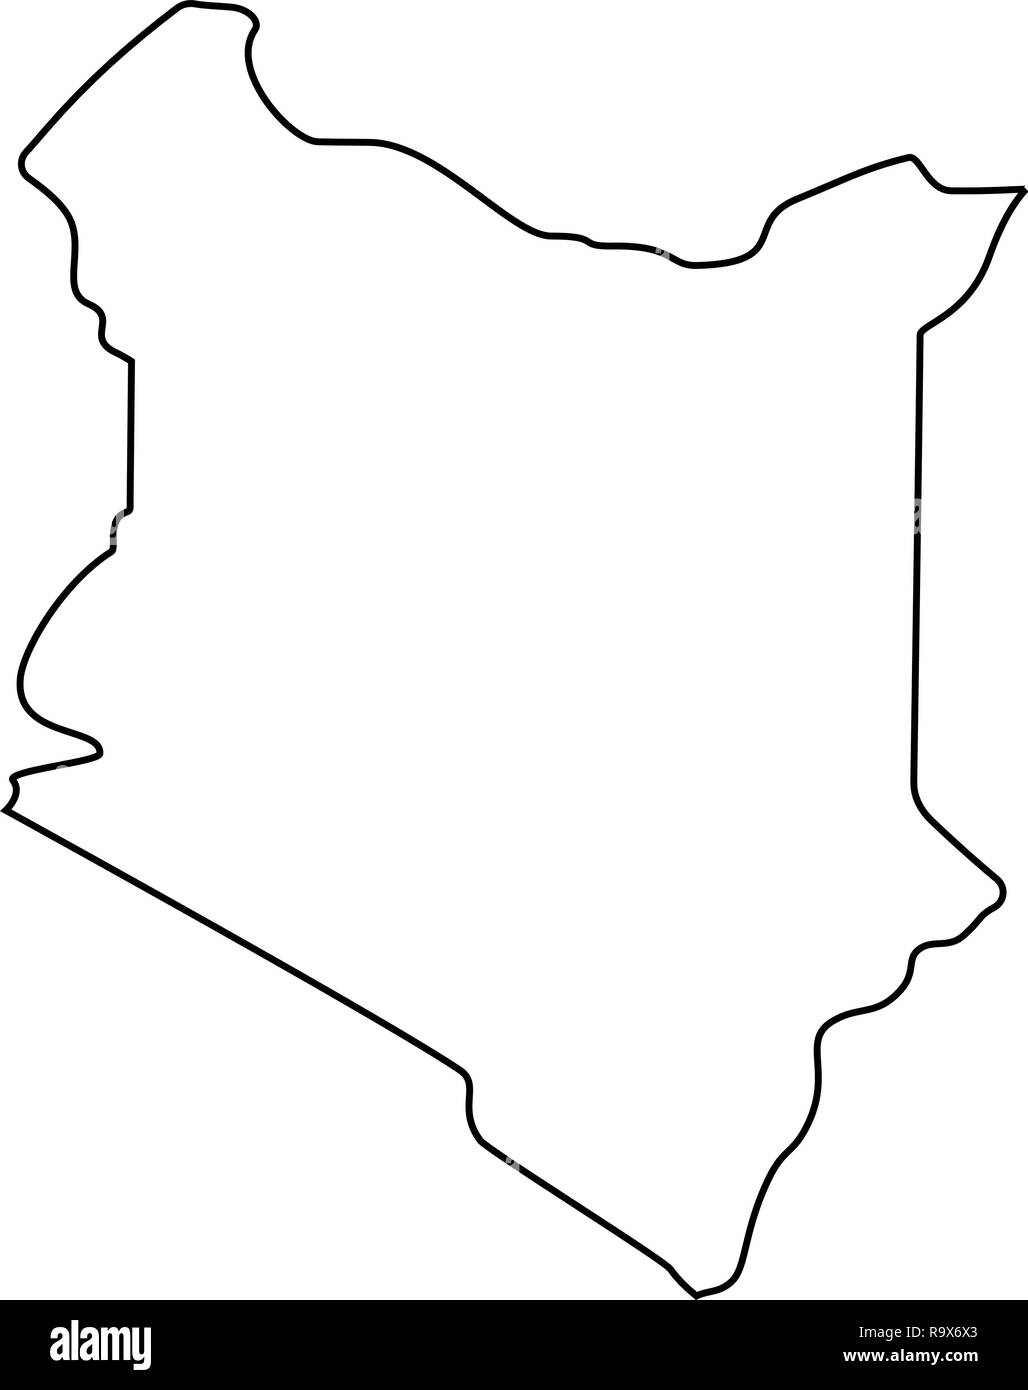 map of Kenya -outline. Silhouette of Kenya map vector illustration ...